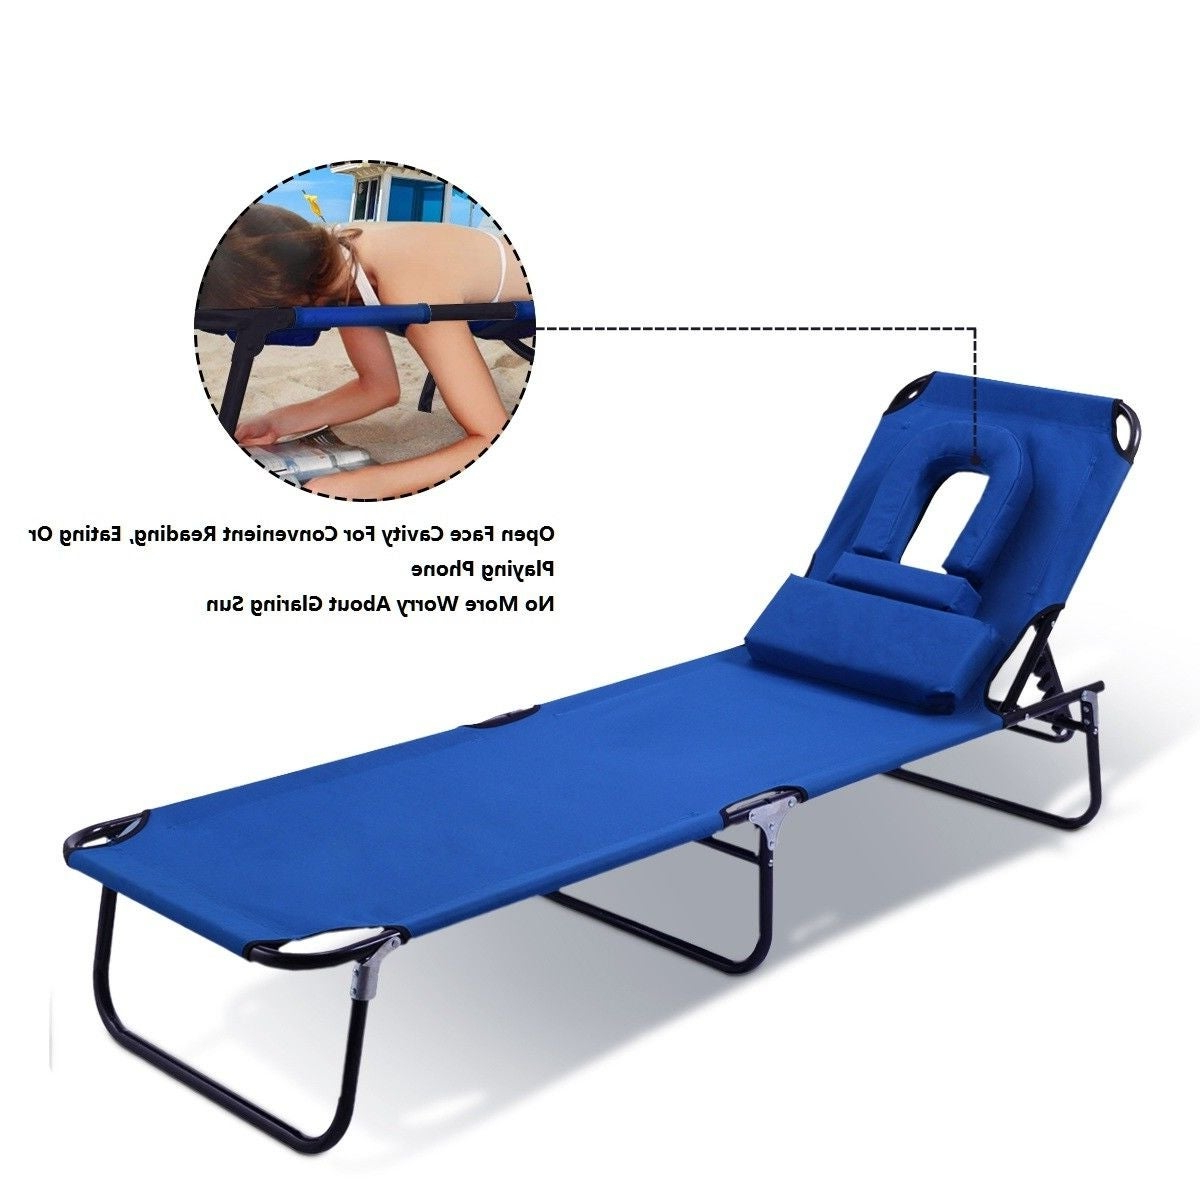 Current Outdoor Yard Pool Recliner Folding Lounge Table Chairs For Costway Patio Foldable Chaise Lounge Chair Bed Outdoor Beach Camping Recliner Pool Yard (View 14 of 25)